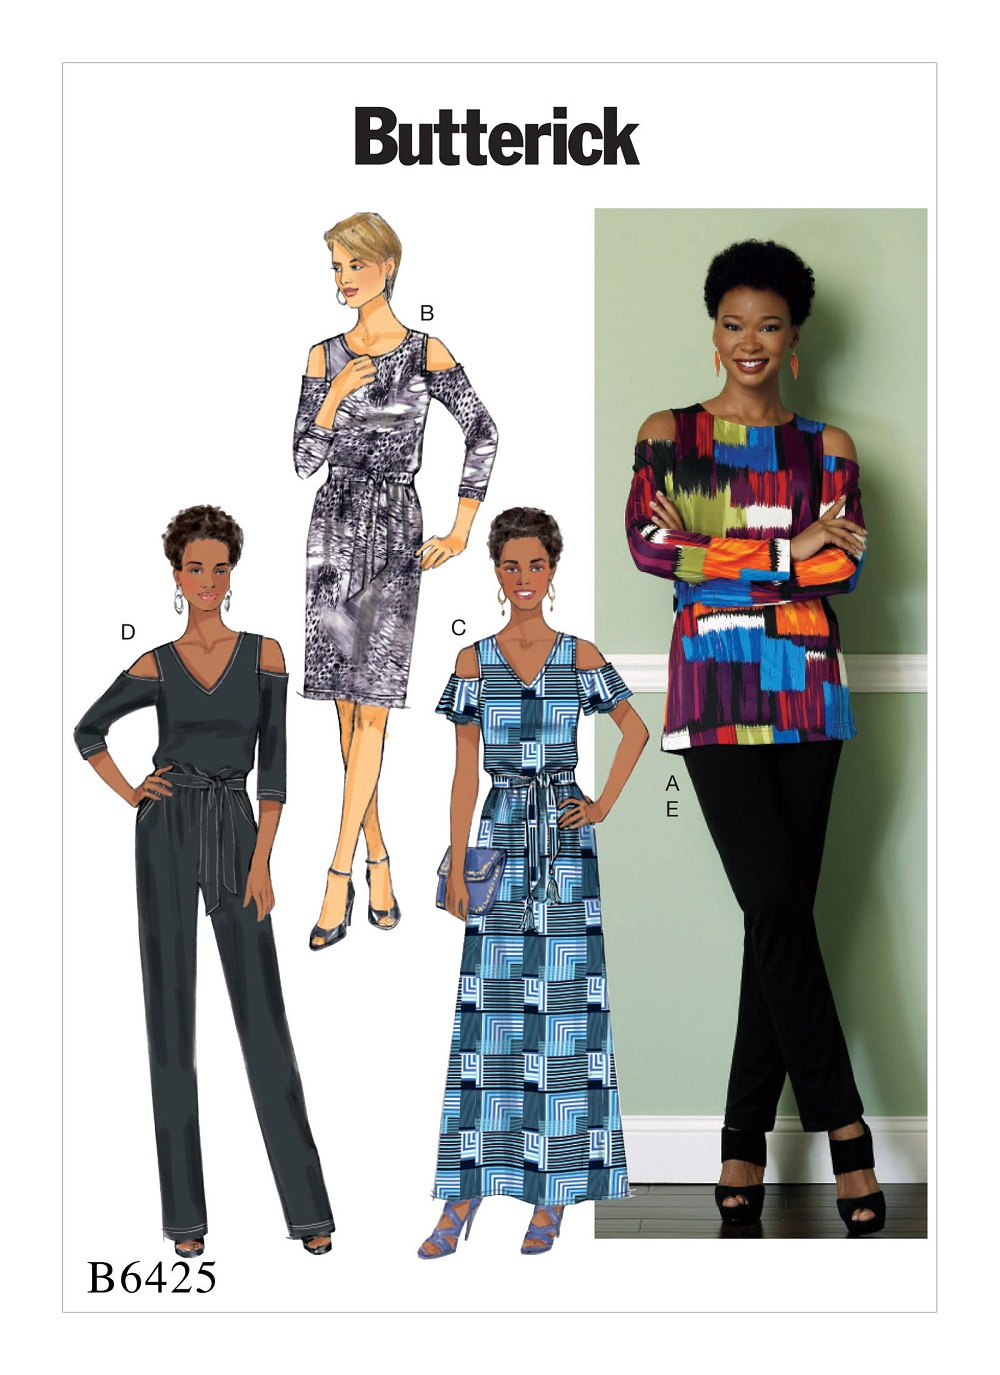 Image result for images butterick 6425